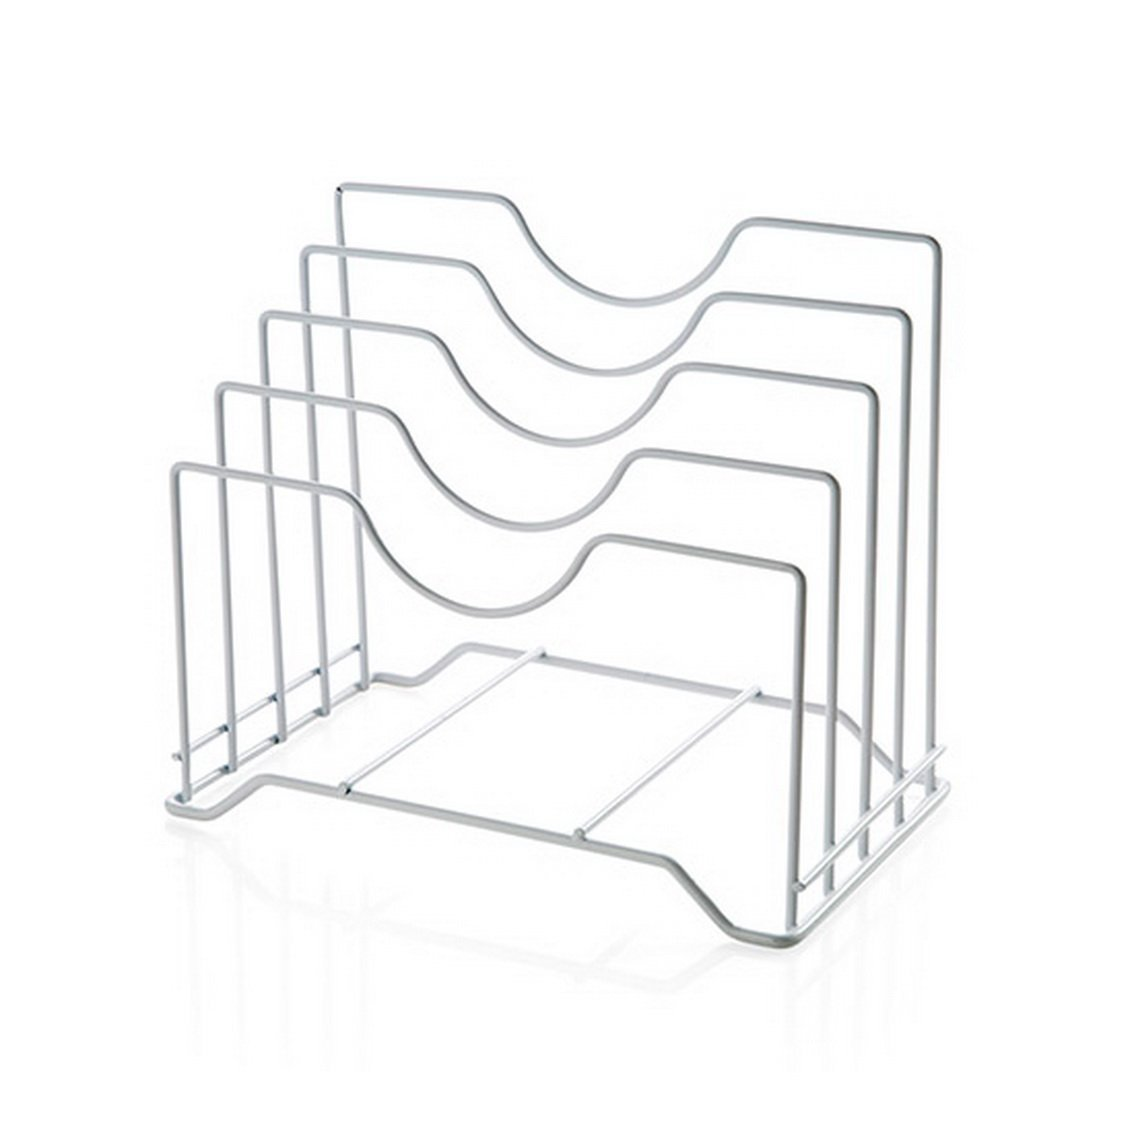 fengg2030shann Iron lid rack multi-layer glove rack put the lid frame sub kitchen cutting boards racks cutting board storage shelf Cutting board rack pot rack pot rack shelving storage racks shelves